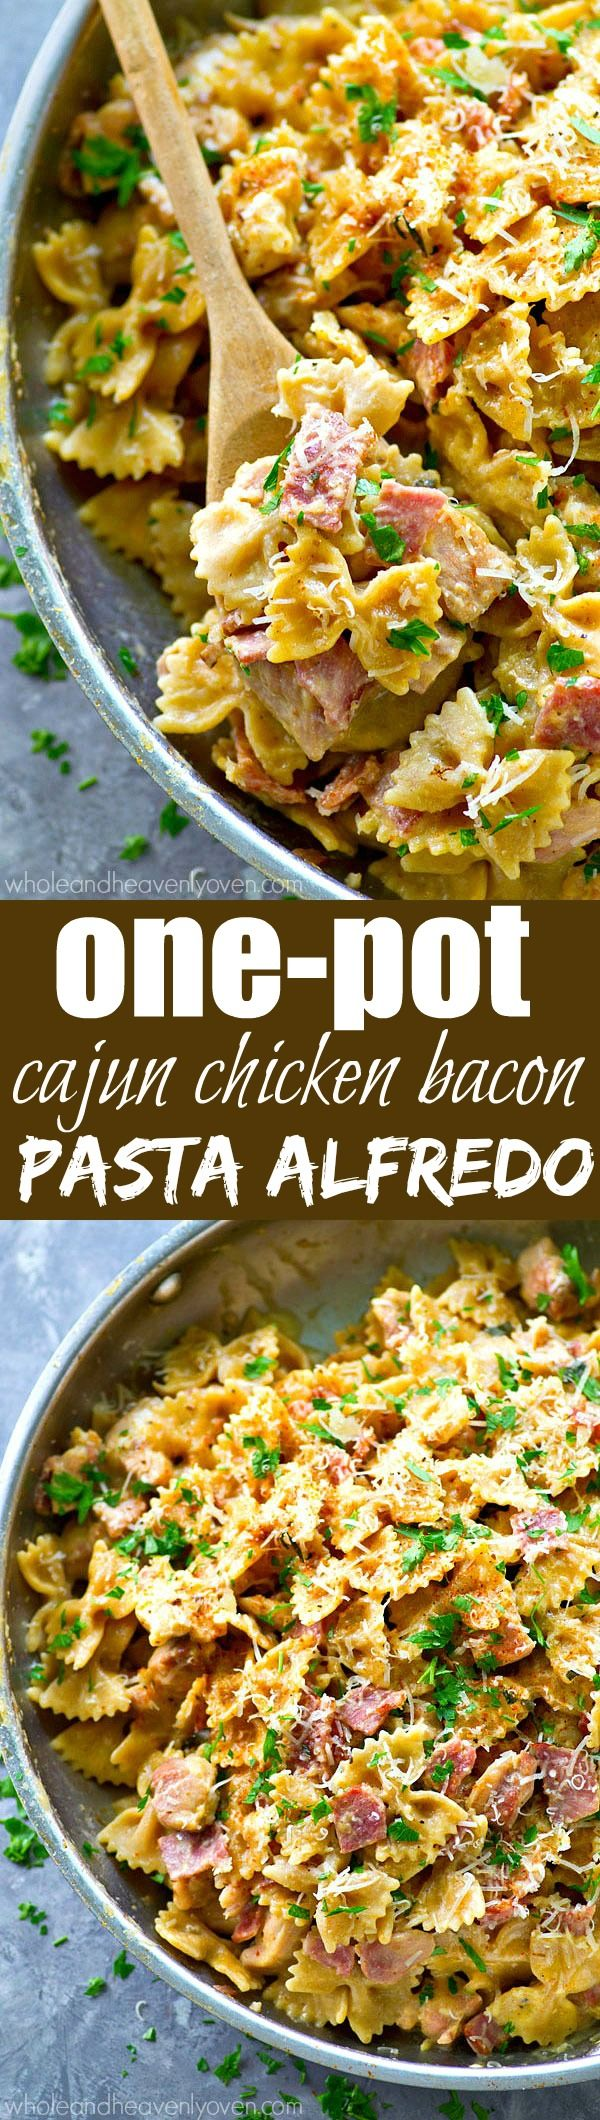 Ready for the ultimate one-pot dinner? This Cajun chicken pasta alfredo is…